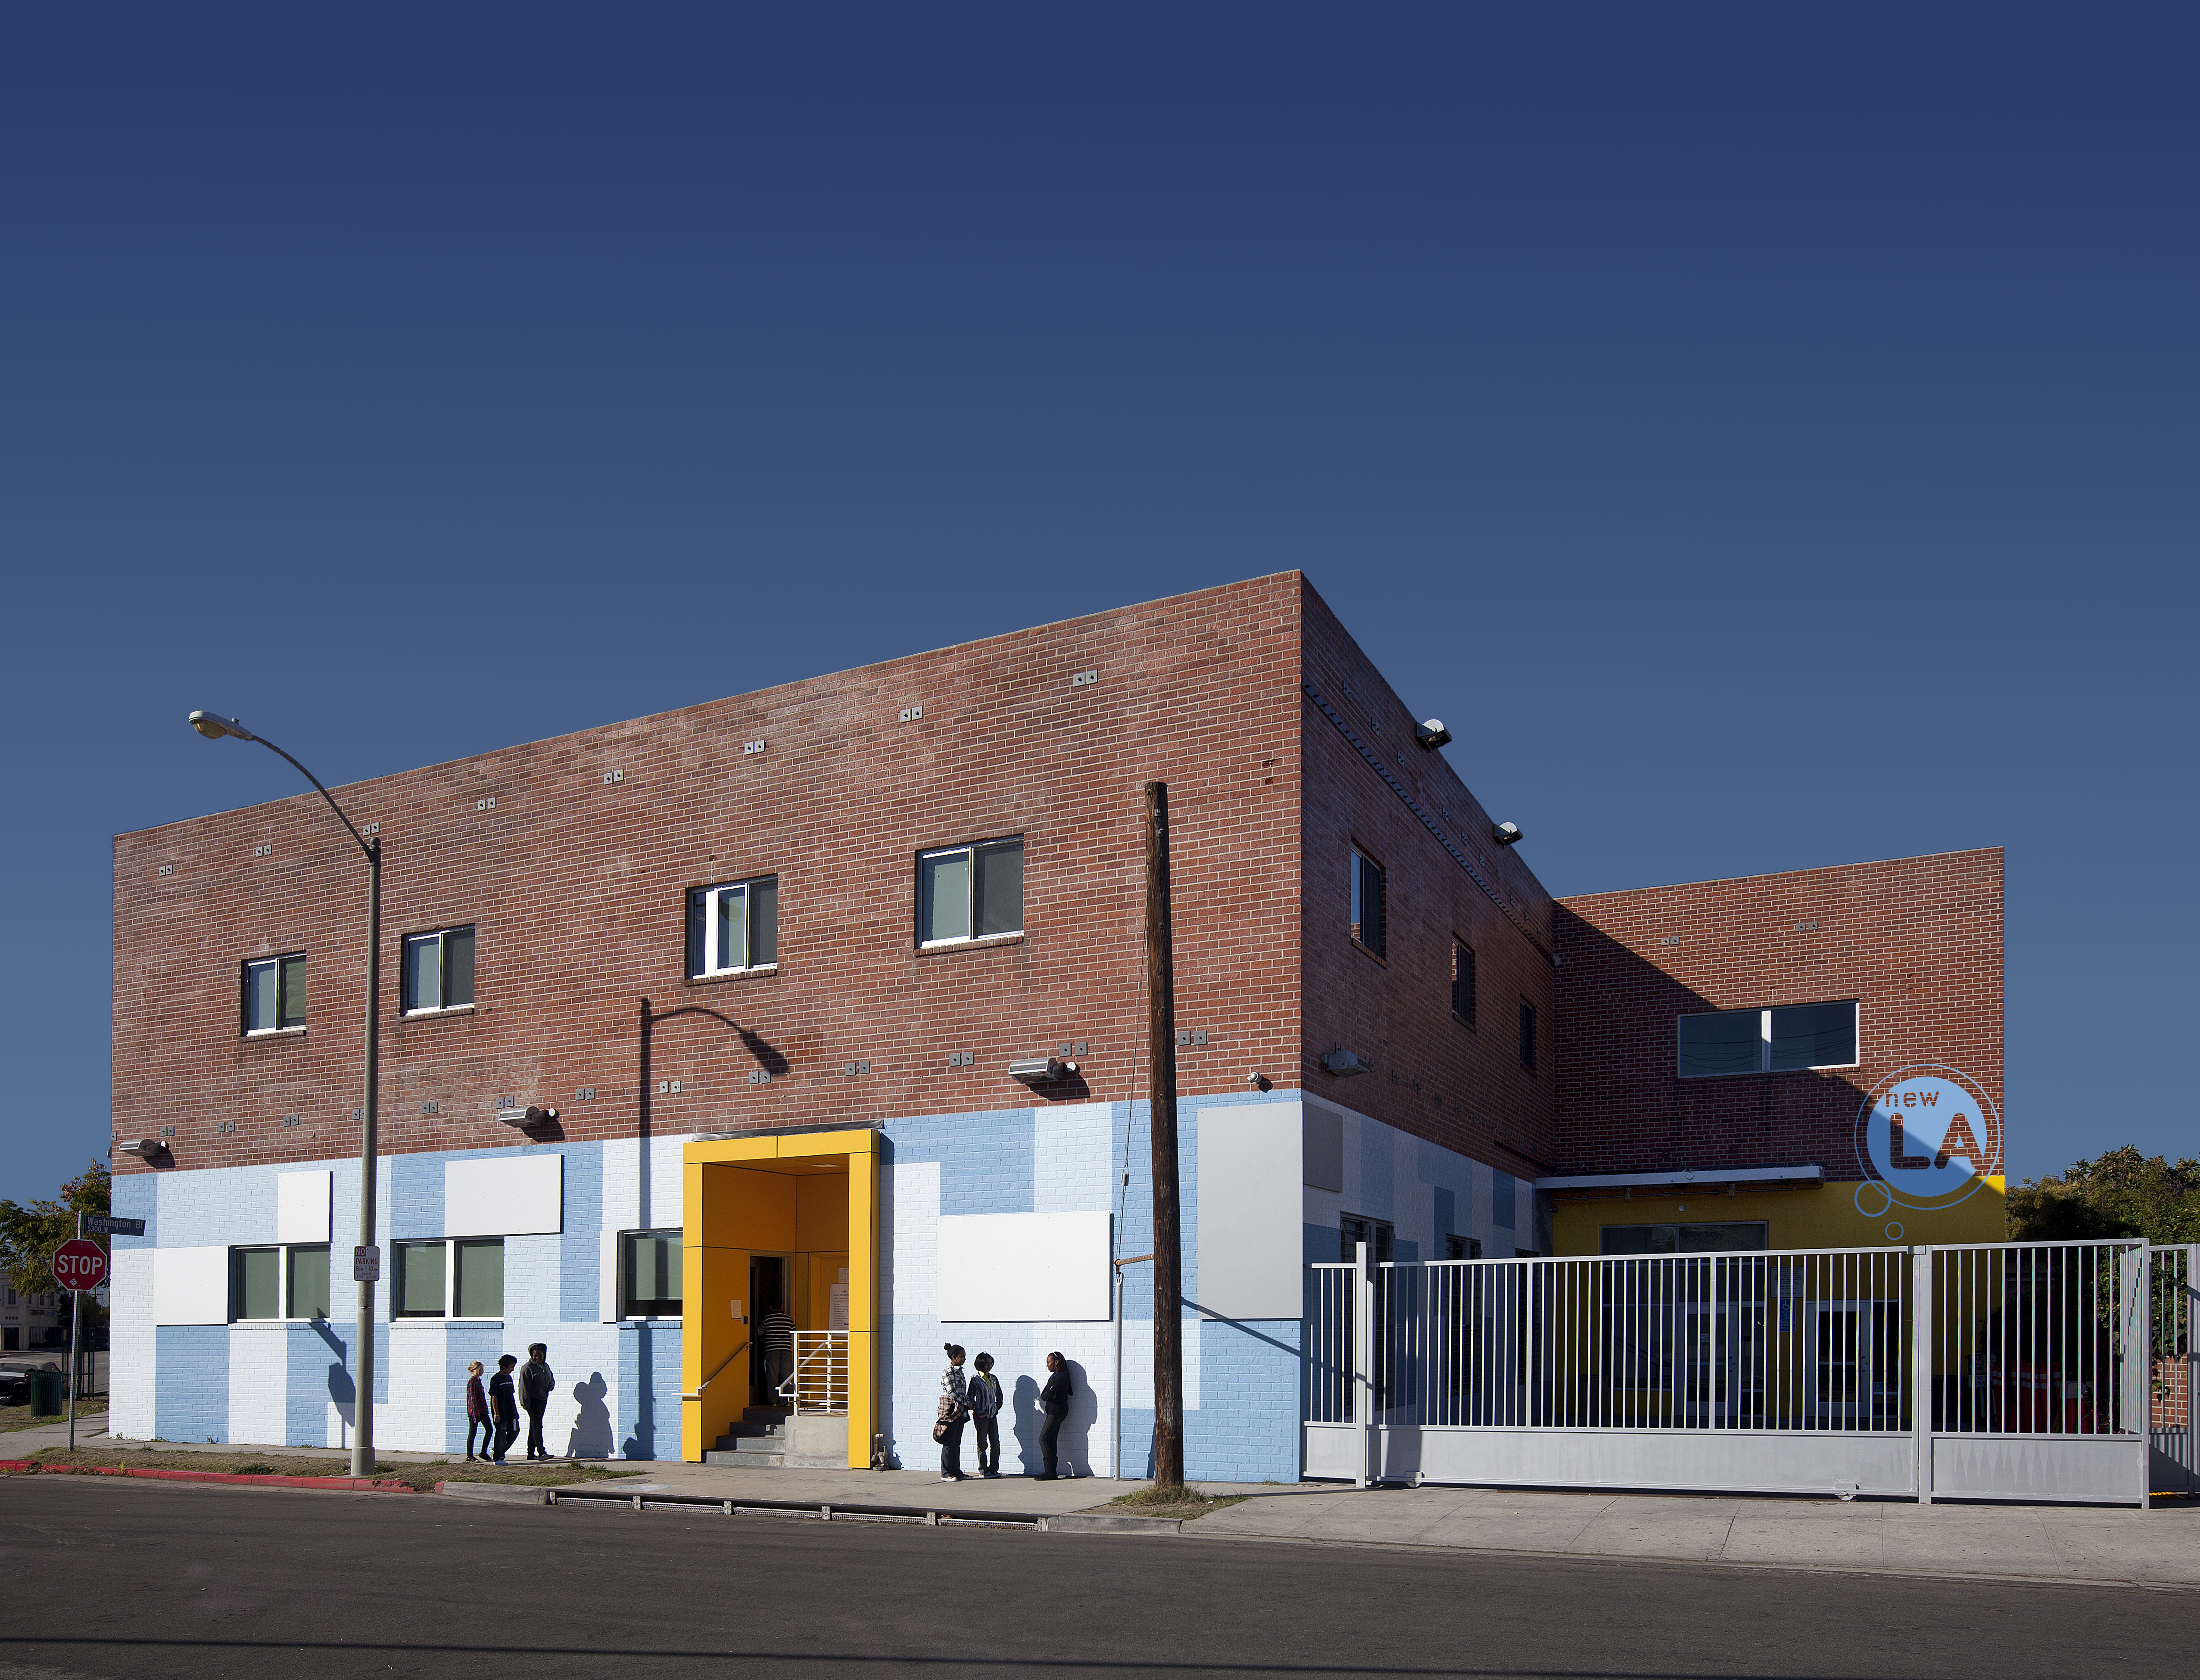 New los angeles charter school architect magazine for Design consultancy los angeles